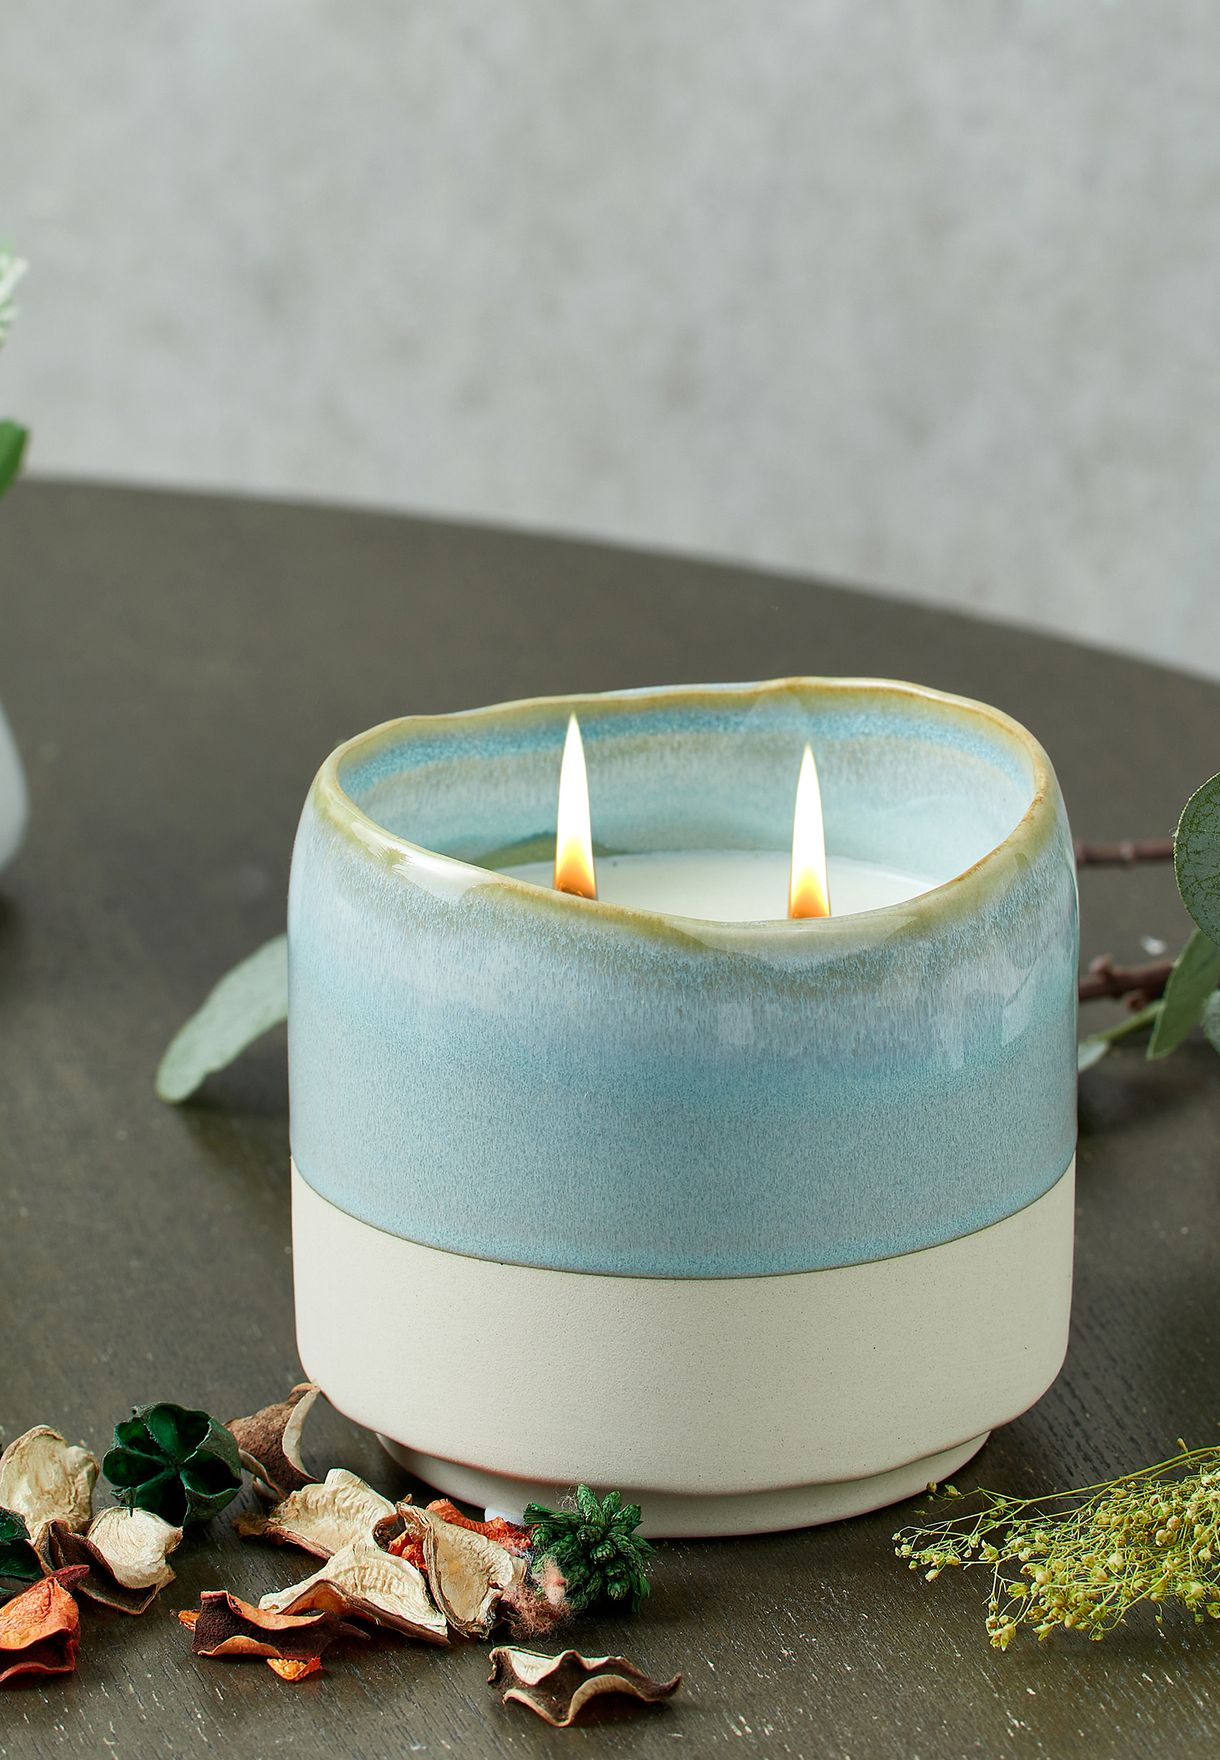 Green Pear & Wildflower Serenity Candle